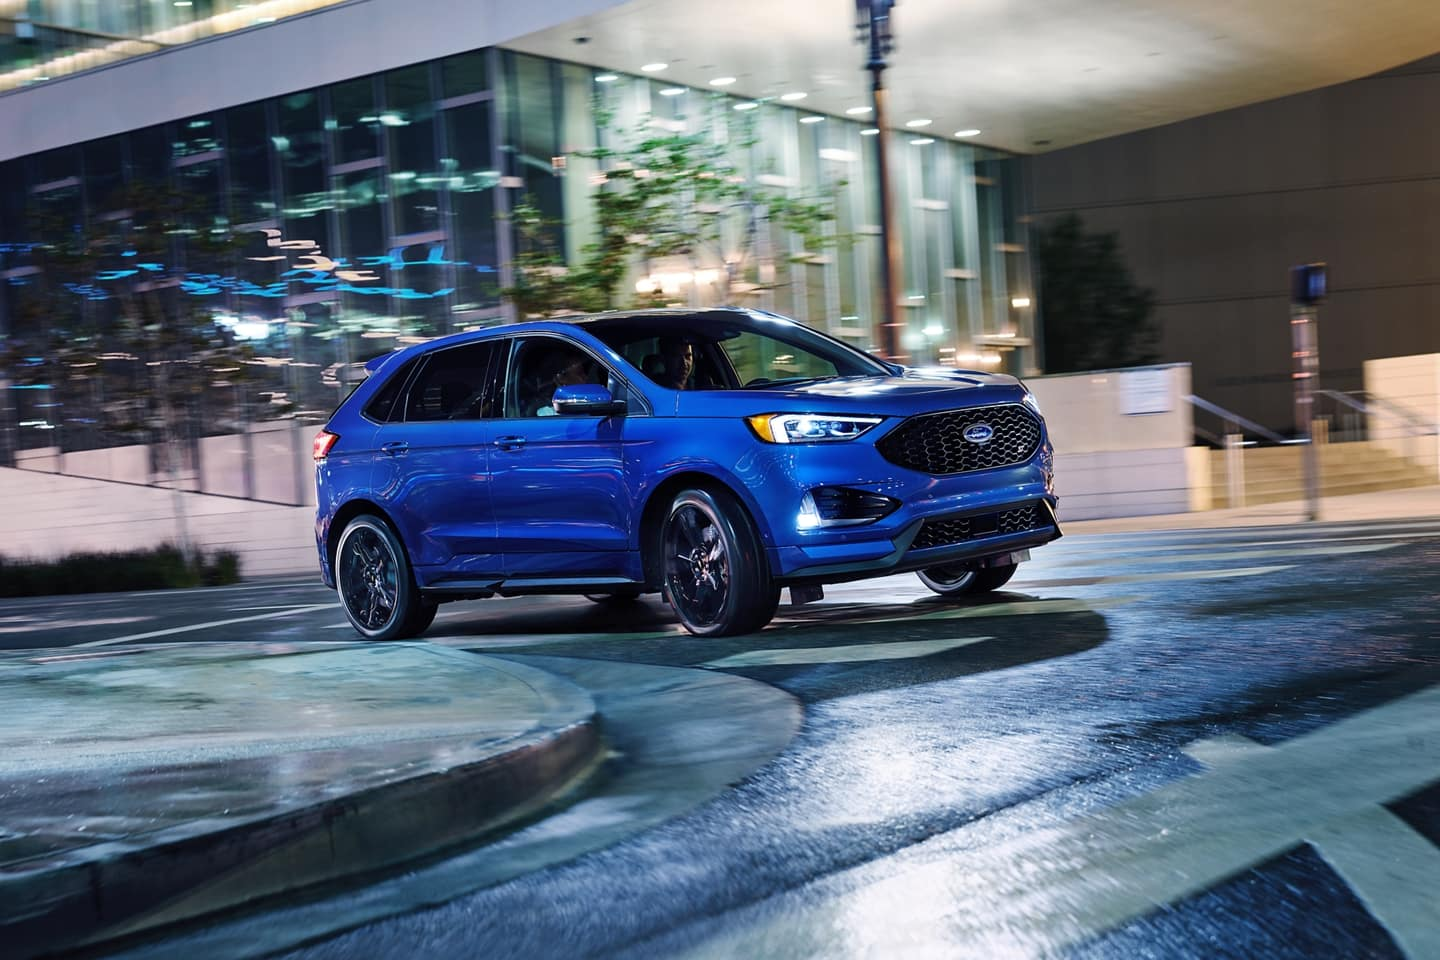 2020 Ford Edge going around curve